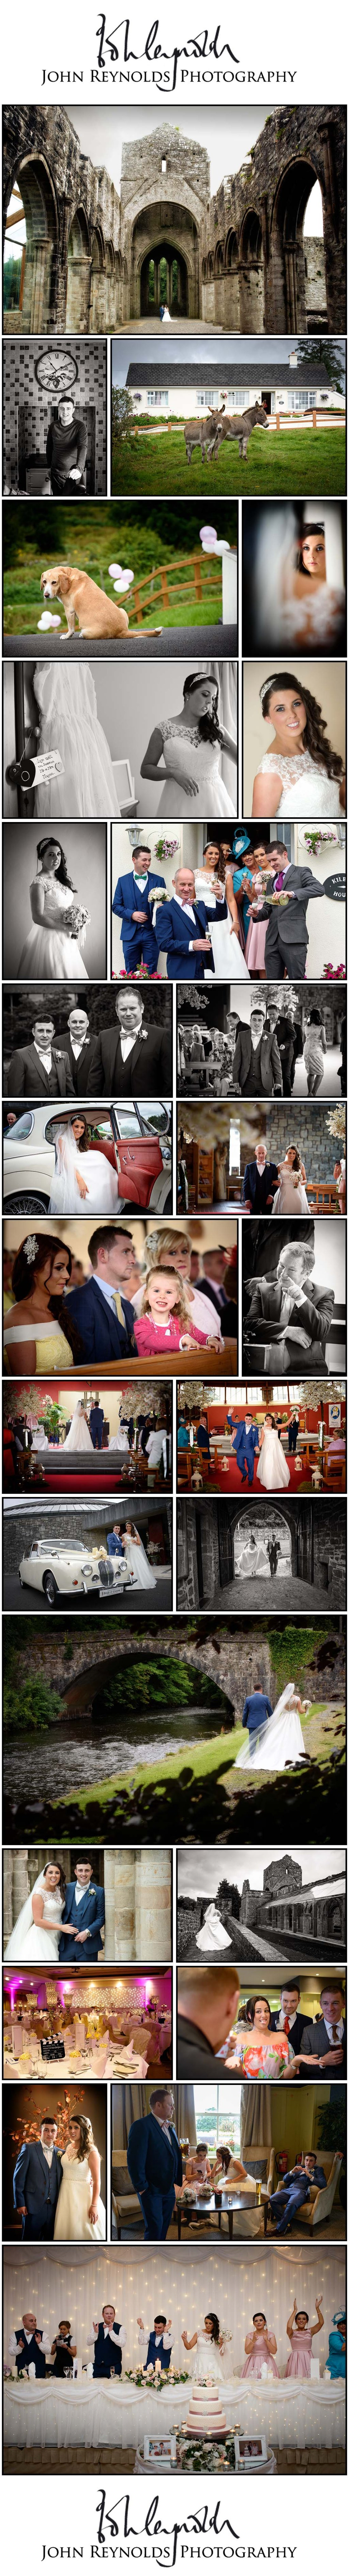 Blog Collage-Siobhan&Joe